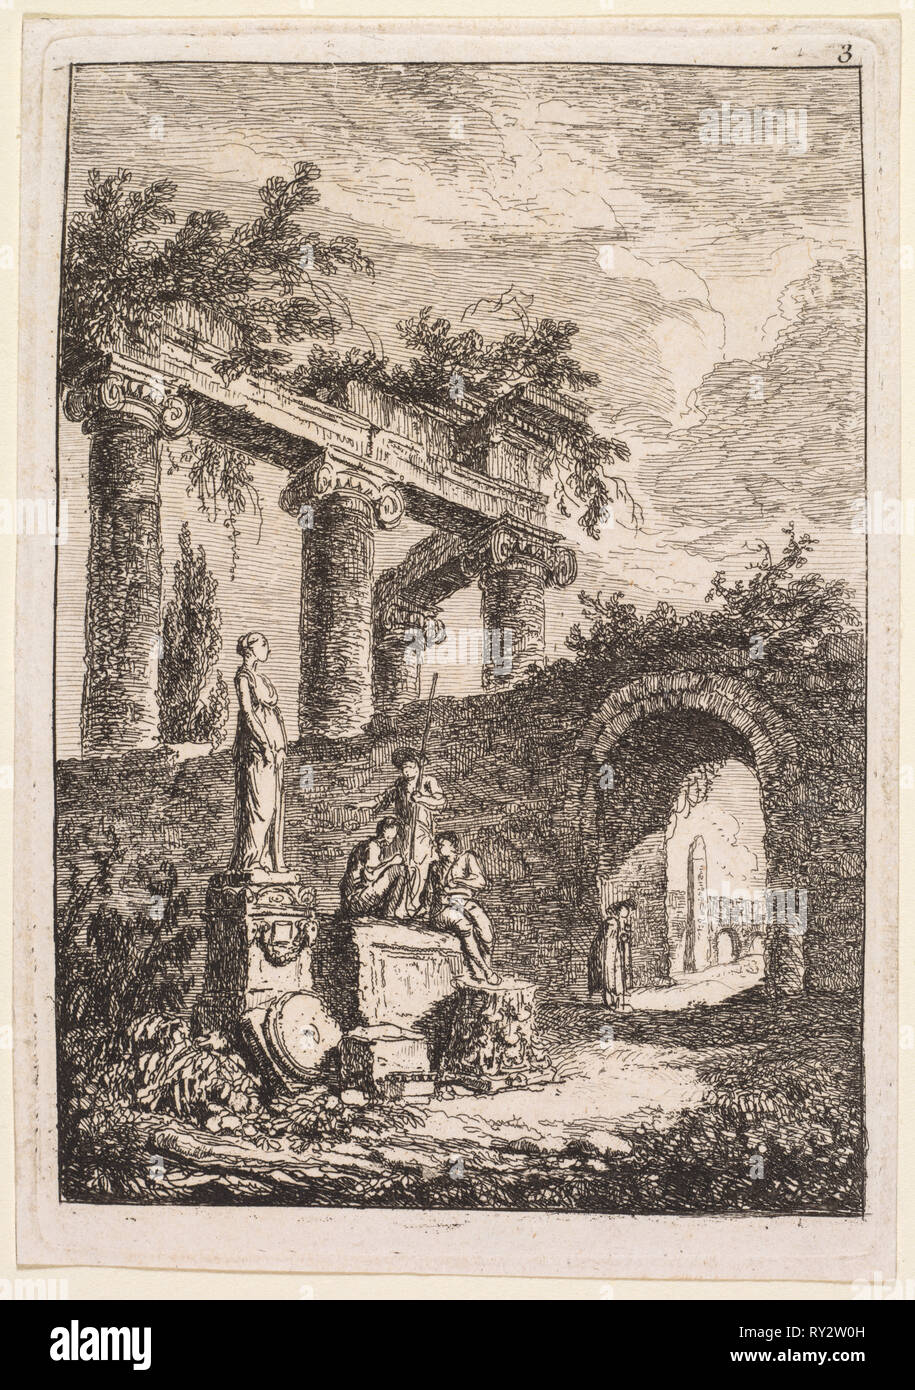 Evenings in Rome:  The Statue in Front of Ruins, 1763-1764. Hubert Robert (French, 1733-1808). Etching; platemark: 13.5 x 9.4 cm (5 5/16 x 3 11/16 in.); border: 12.7 x 9 cm (5 x 3 9/16 in - Stock Image